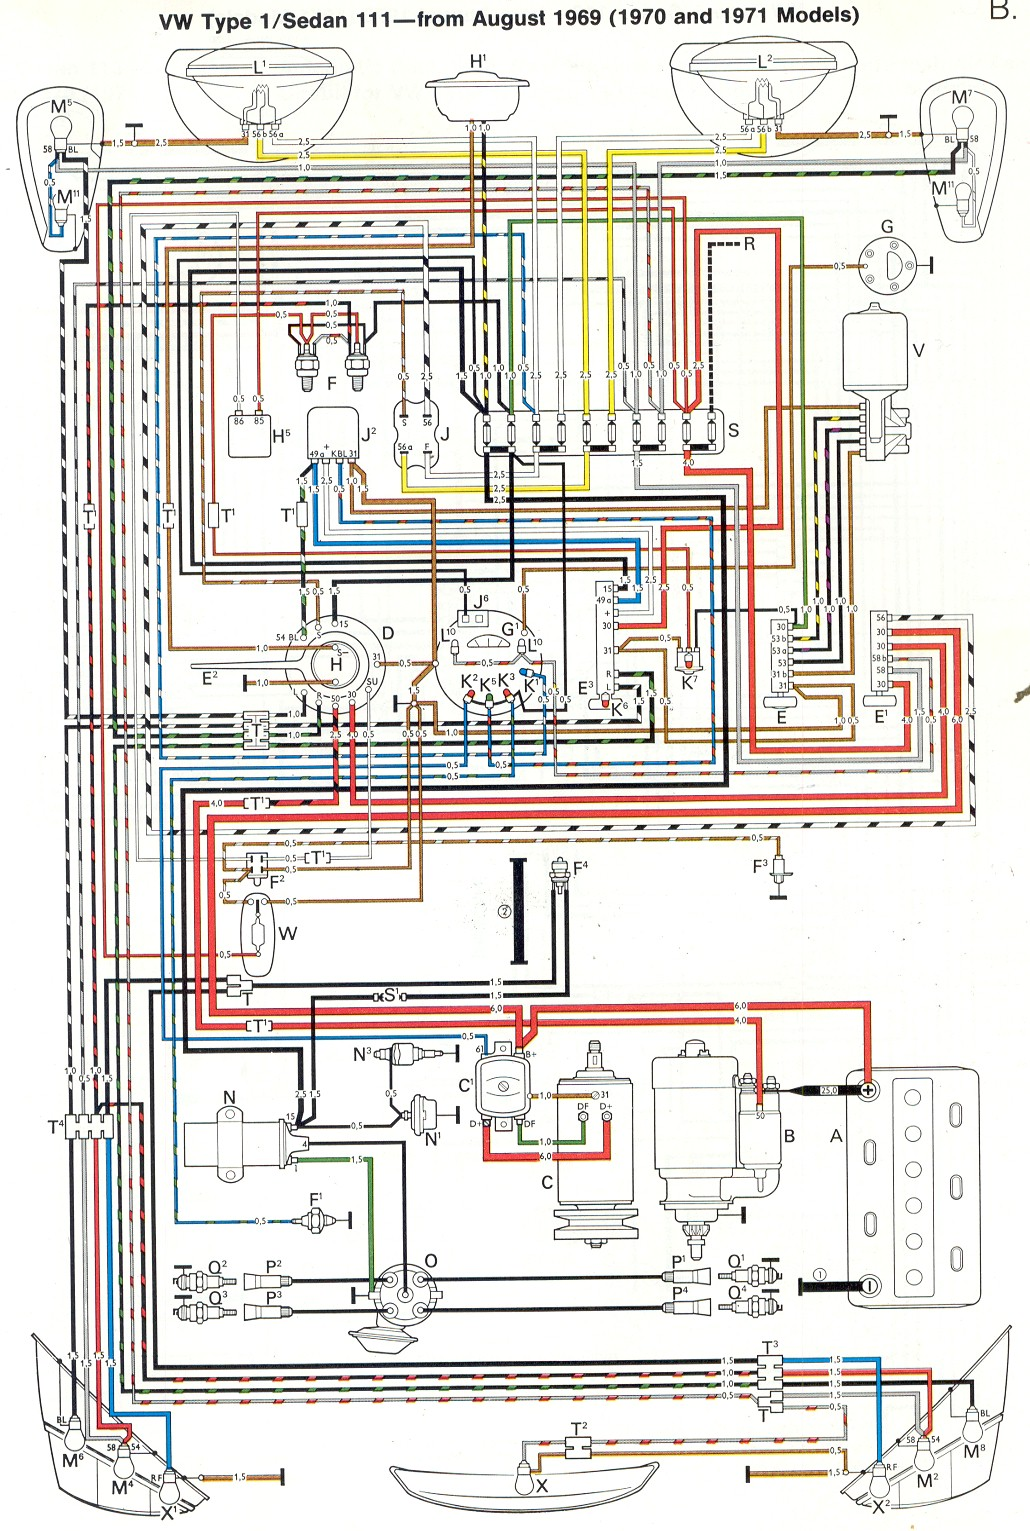 68 Vw Wiring Diagram FULL Version HD Quality Wiring Diagram - TYBO.AS4A.FRAS4A.FR